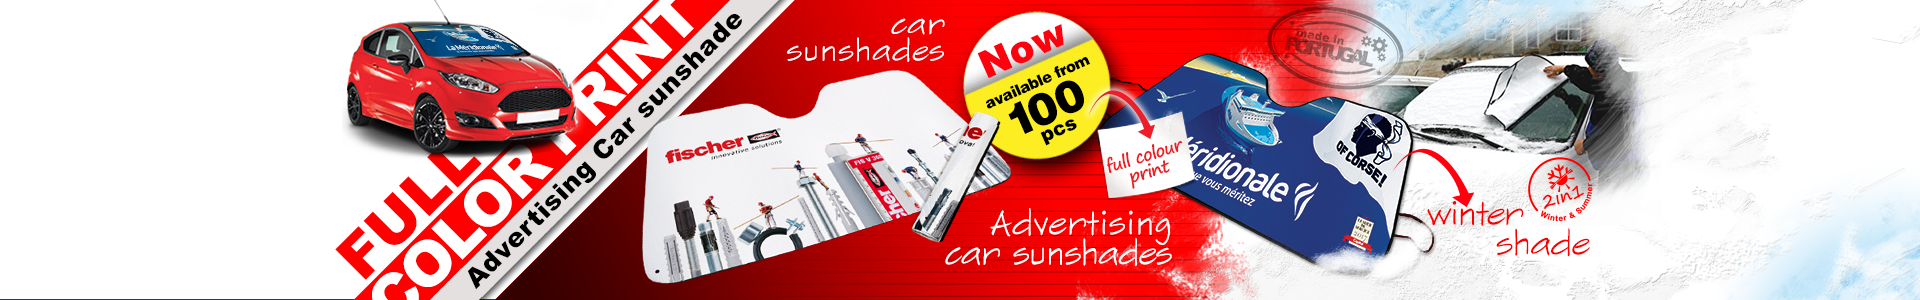 Advertising car sunshade digital printing